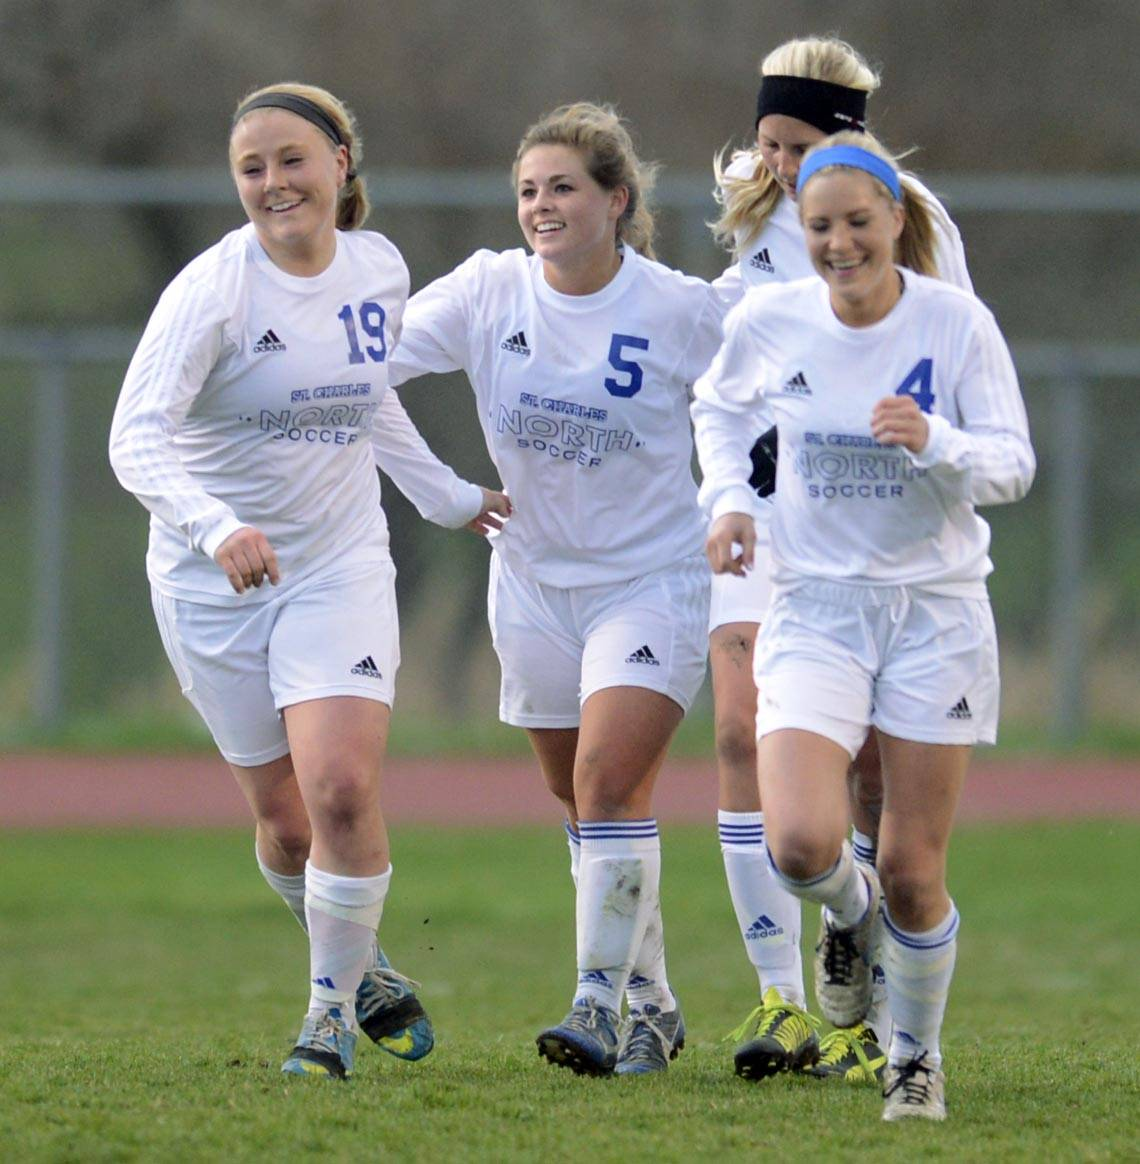 St. Charles North's Hanna Durocher, 5, is surrounded by teammates after her goal against Geneva Wednesday in St. Charles.